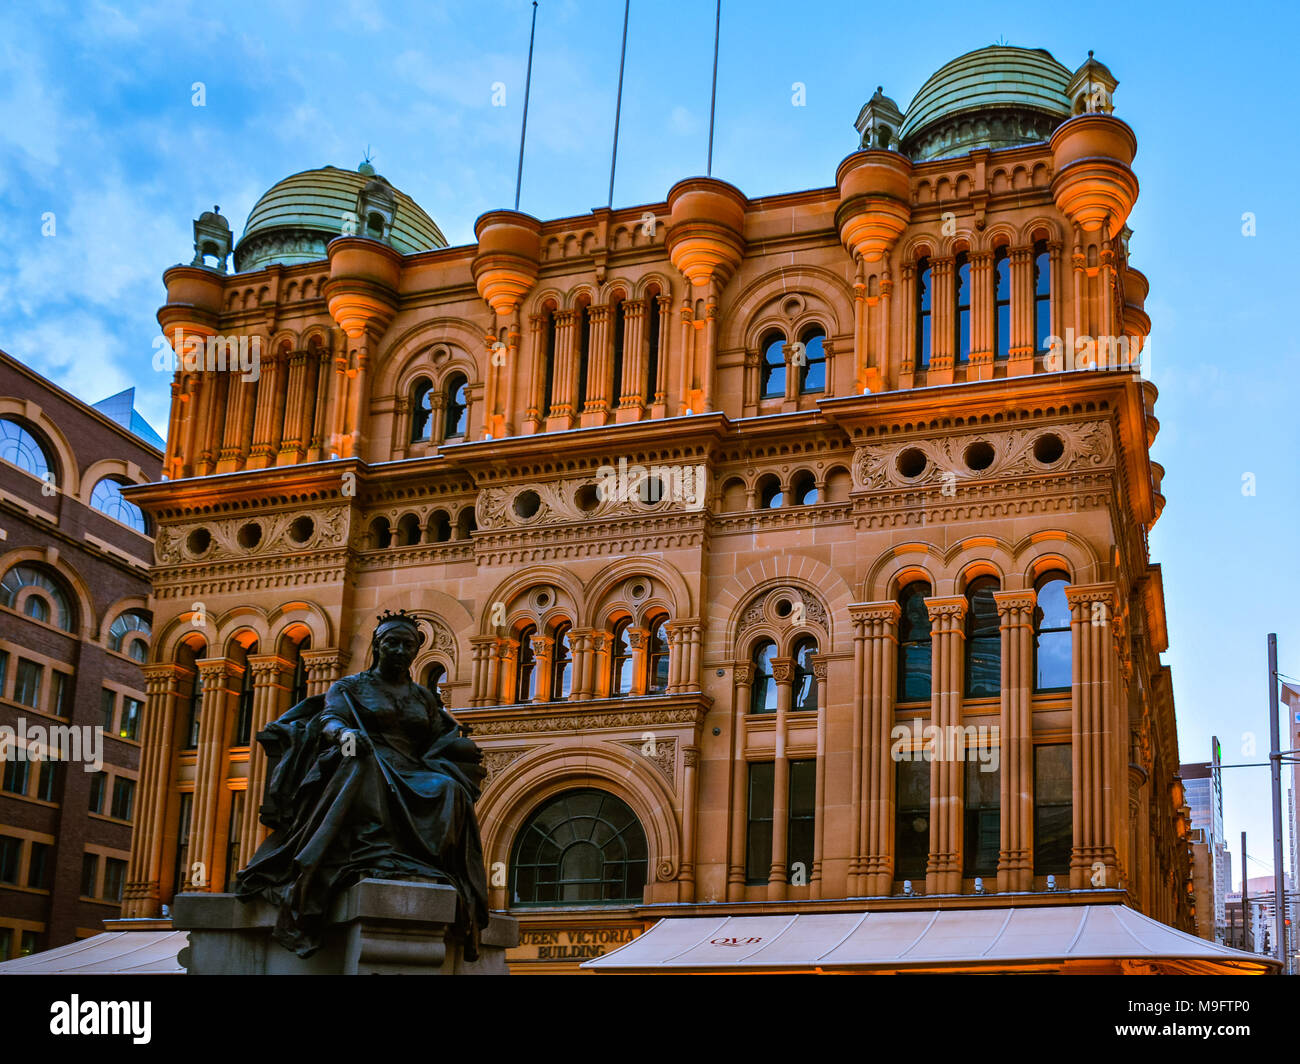 Queen Victoria Building - a late nineteenth-century building located in the central business district of Sydney, Australia. - Stock Image